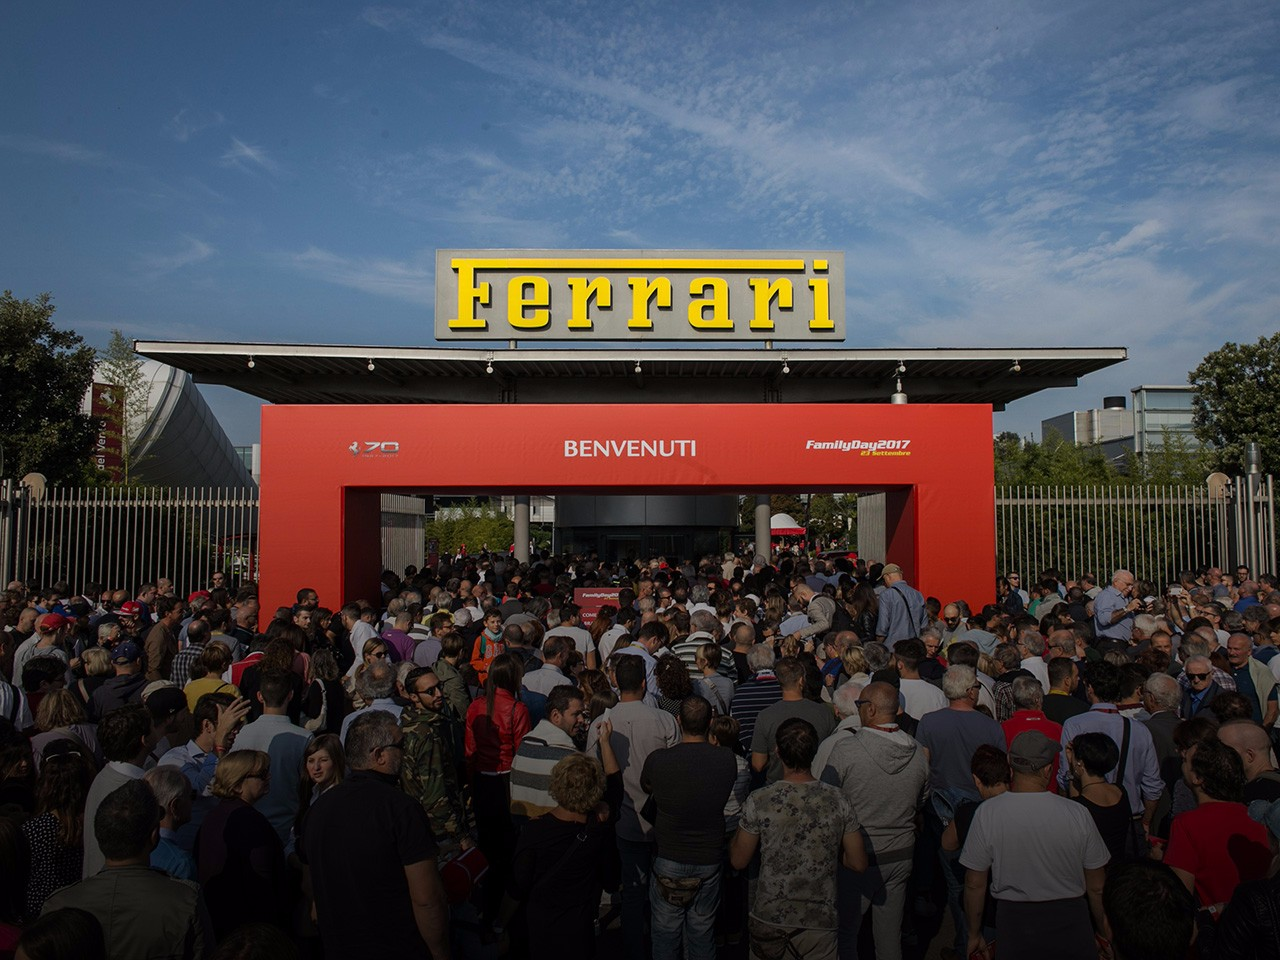 A crowd of 18,000 flocks to the Ferrari Family Day